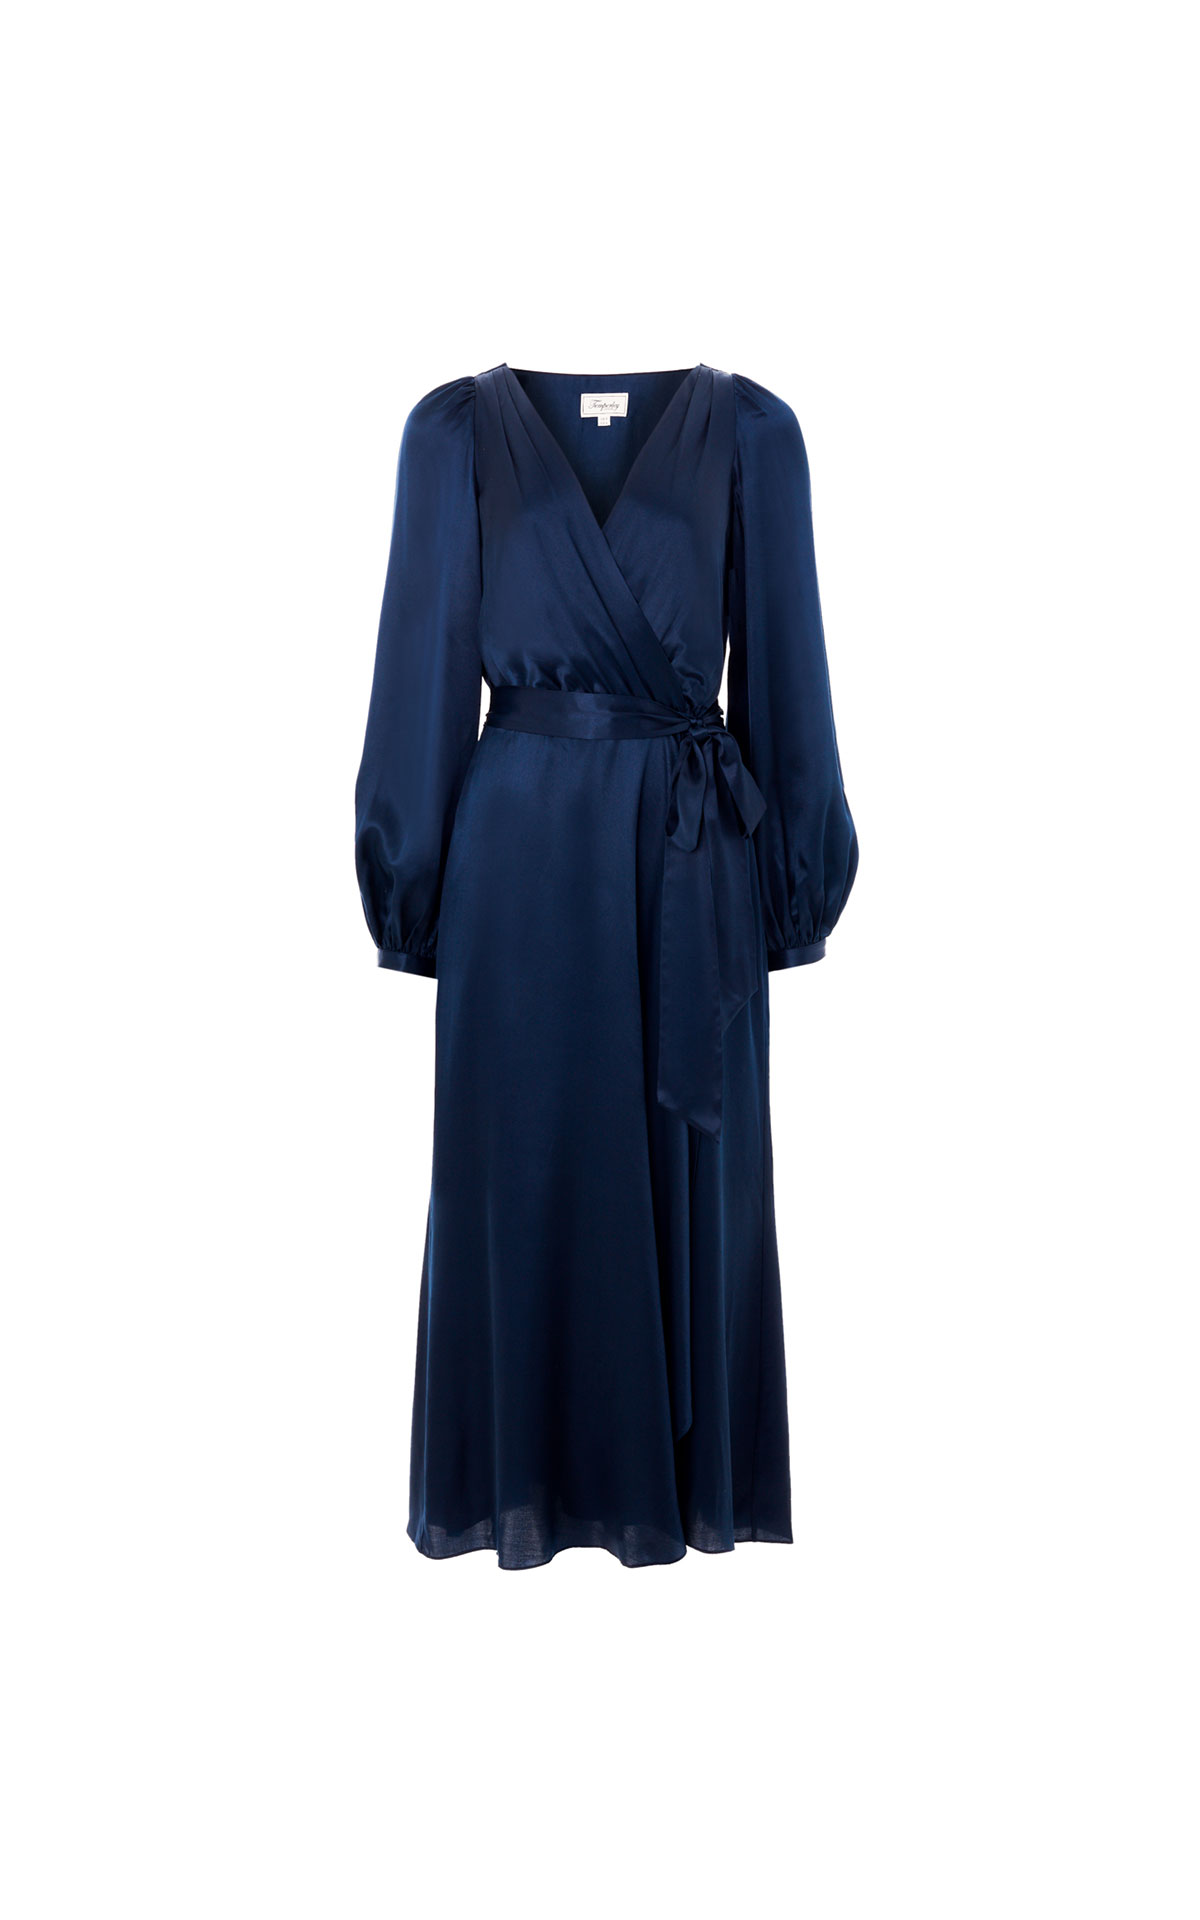 Temperley London Birdie wrap dress from Bicester Village